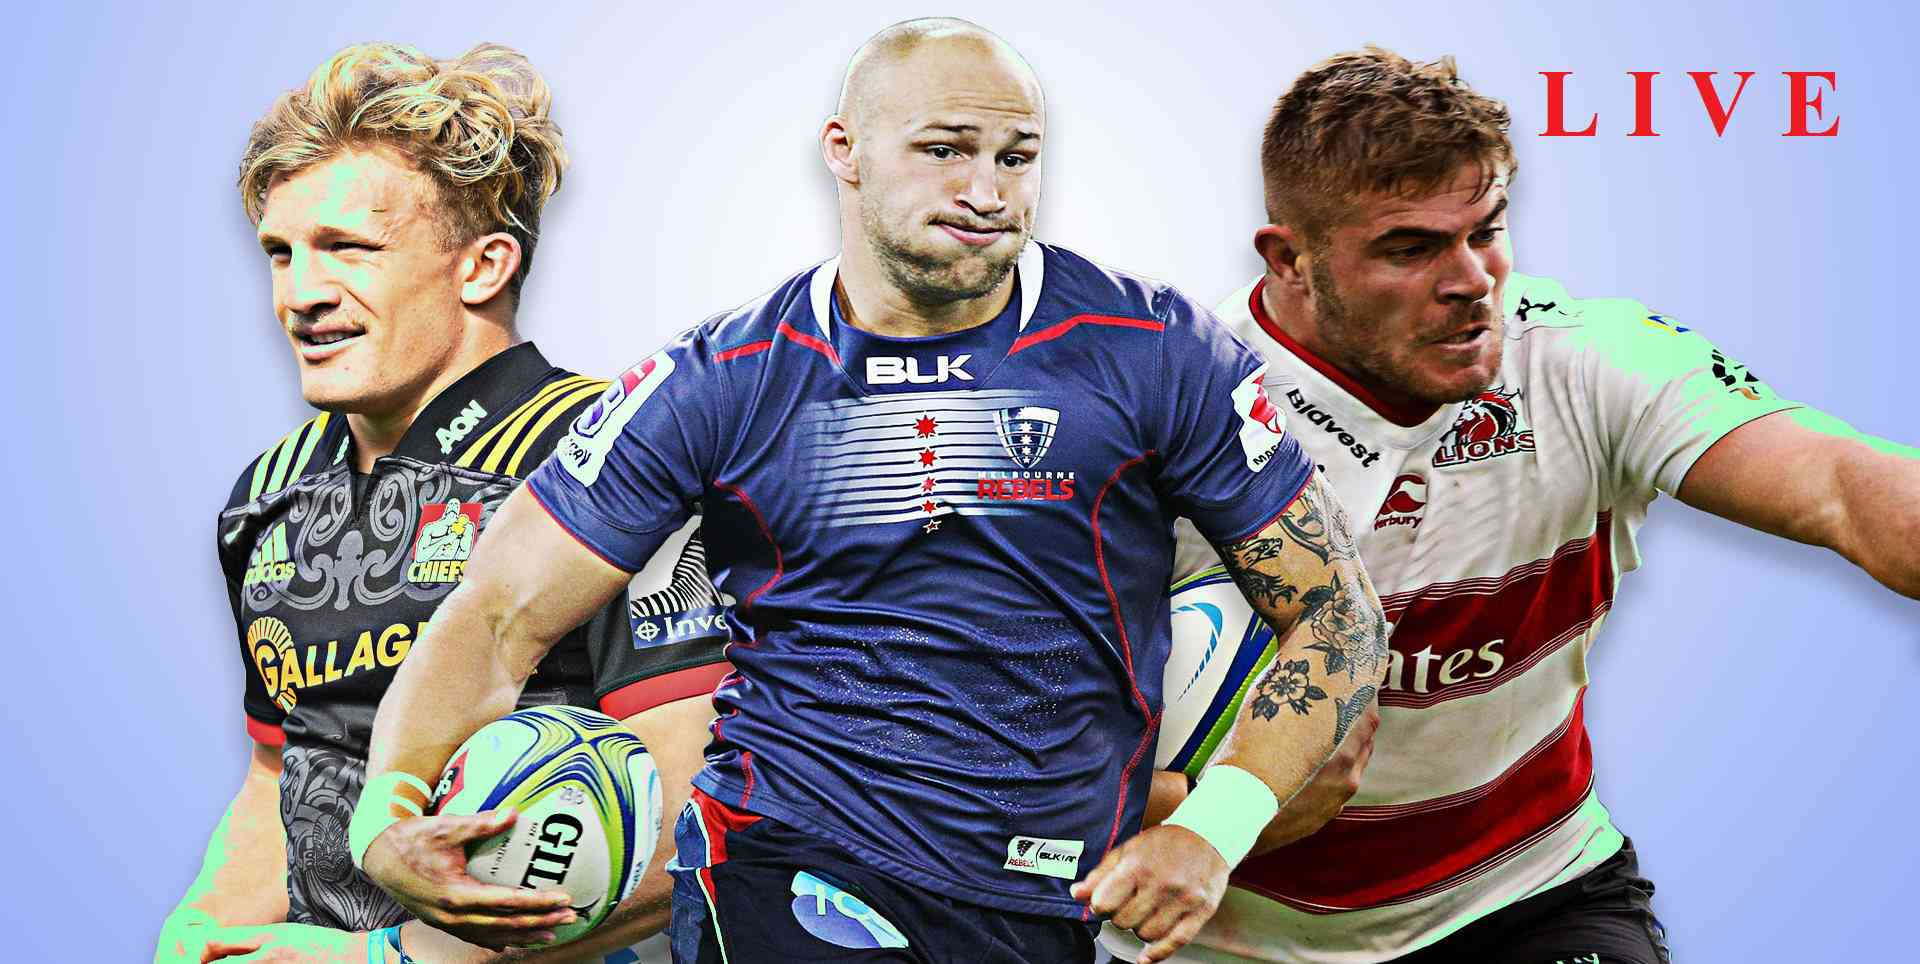 sharks-vs-blues-rugby-live